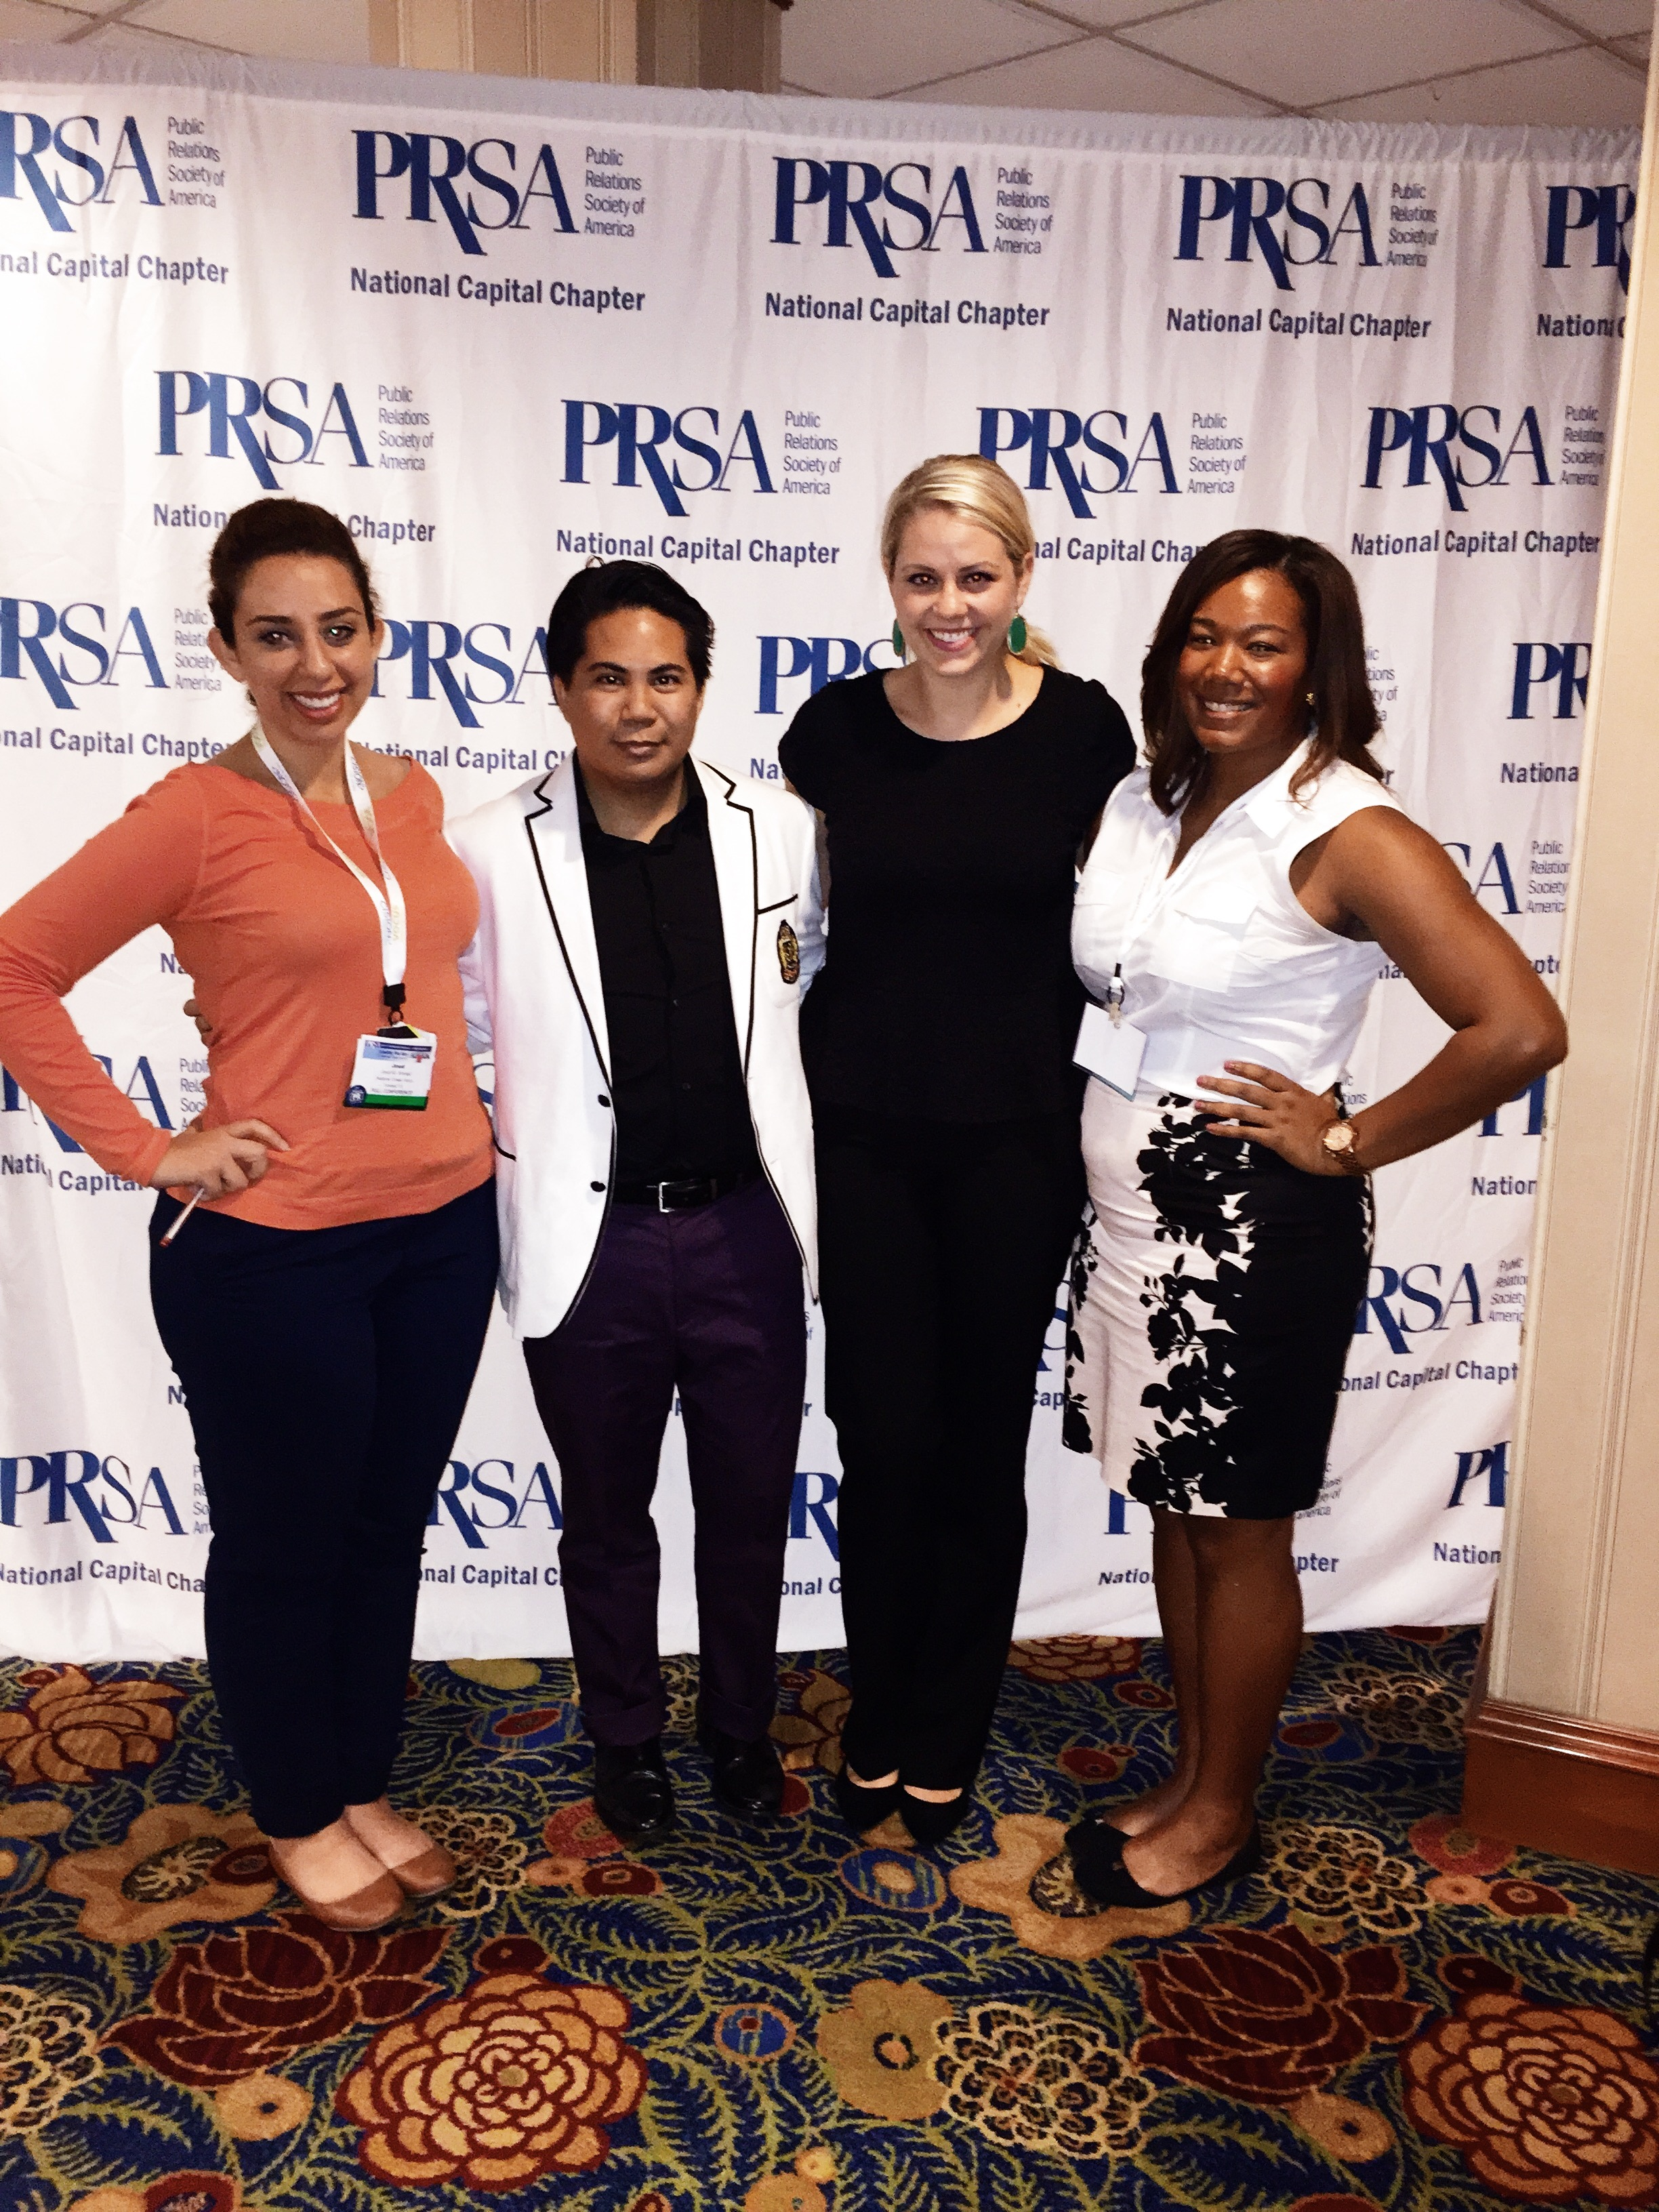 Joud Ahmad, Gemrick Curtom, Angela Austin and Alexandria Sauls after a PRSA General Session.